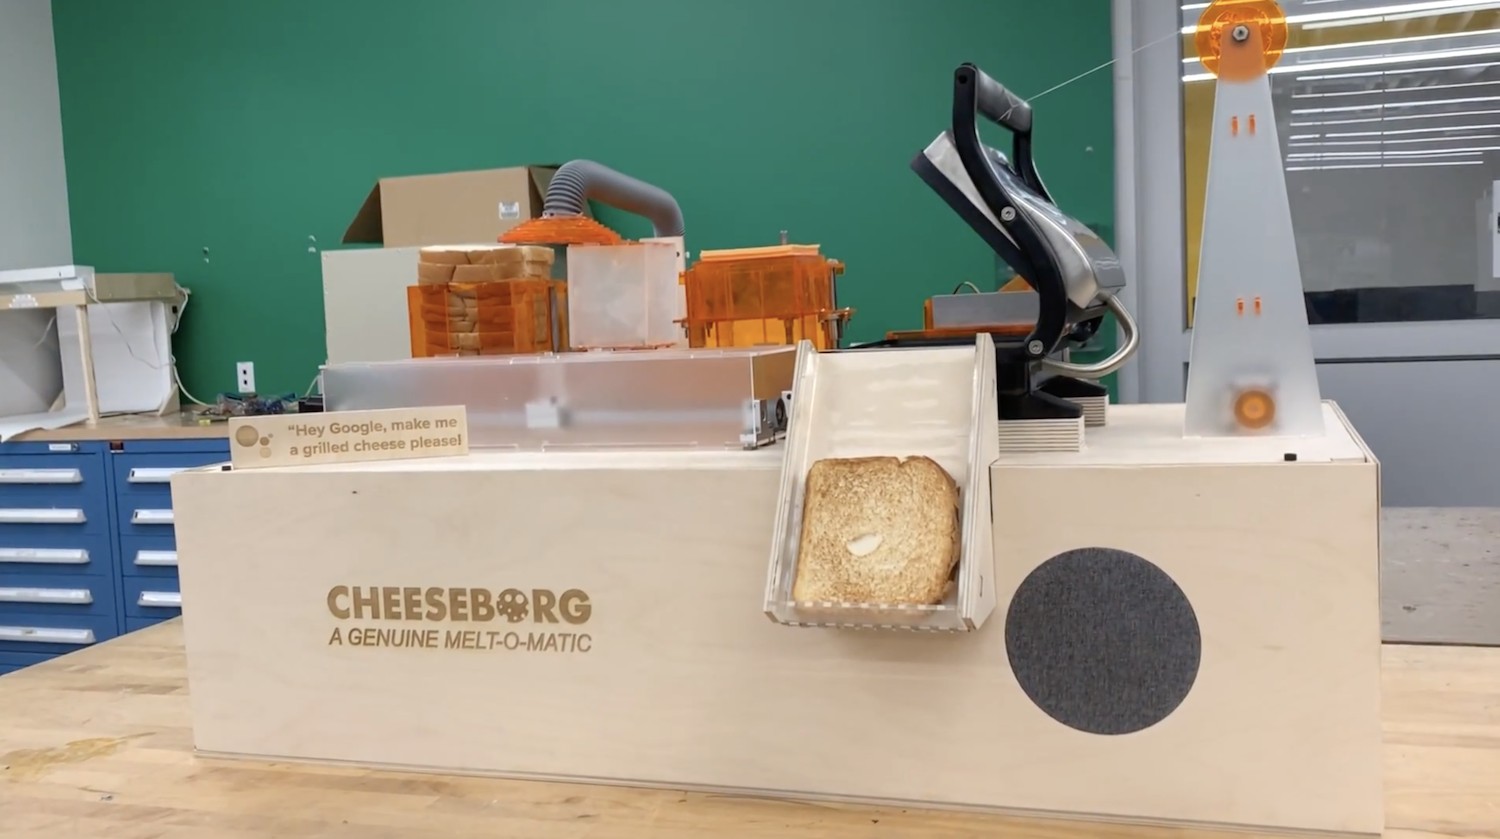 The grilled cheese-making robot of your dreams - Raspberry Pi